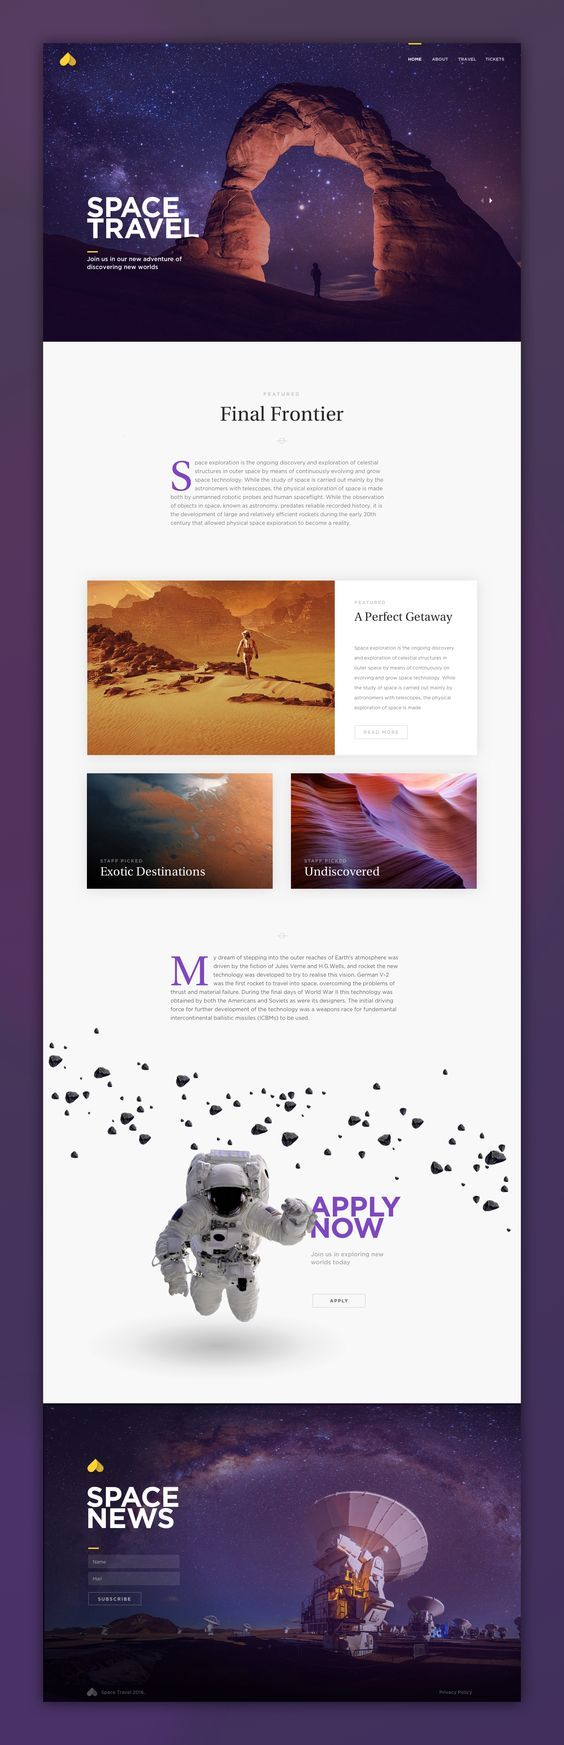 Space Travel Web Design | Fivestar Branding – Design and Branding Agency & Inspiration Gallery